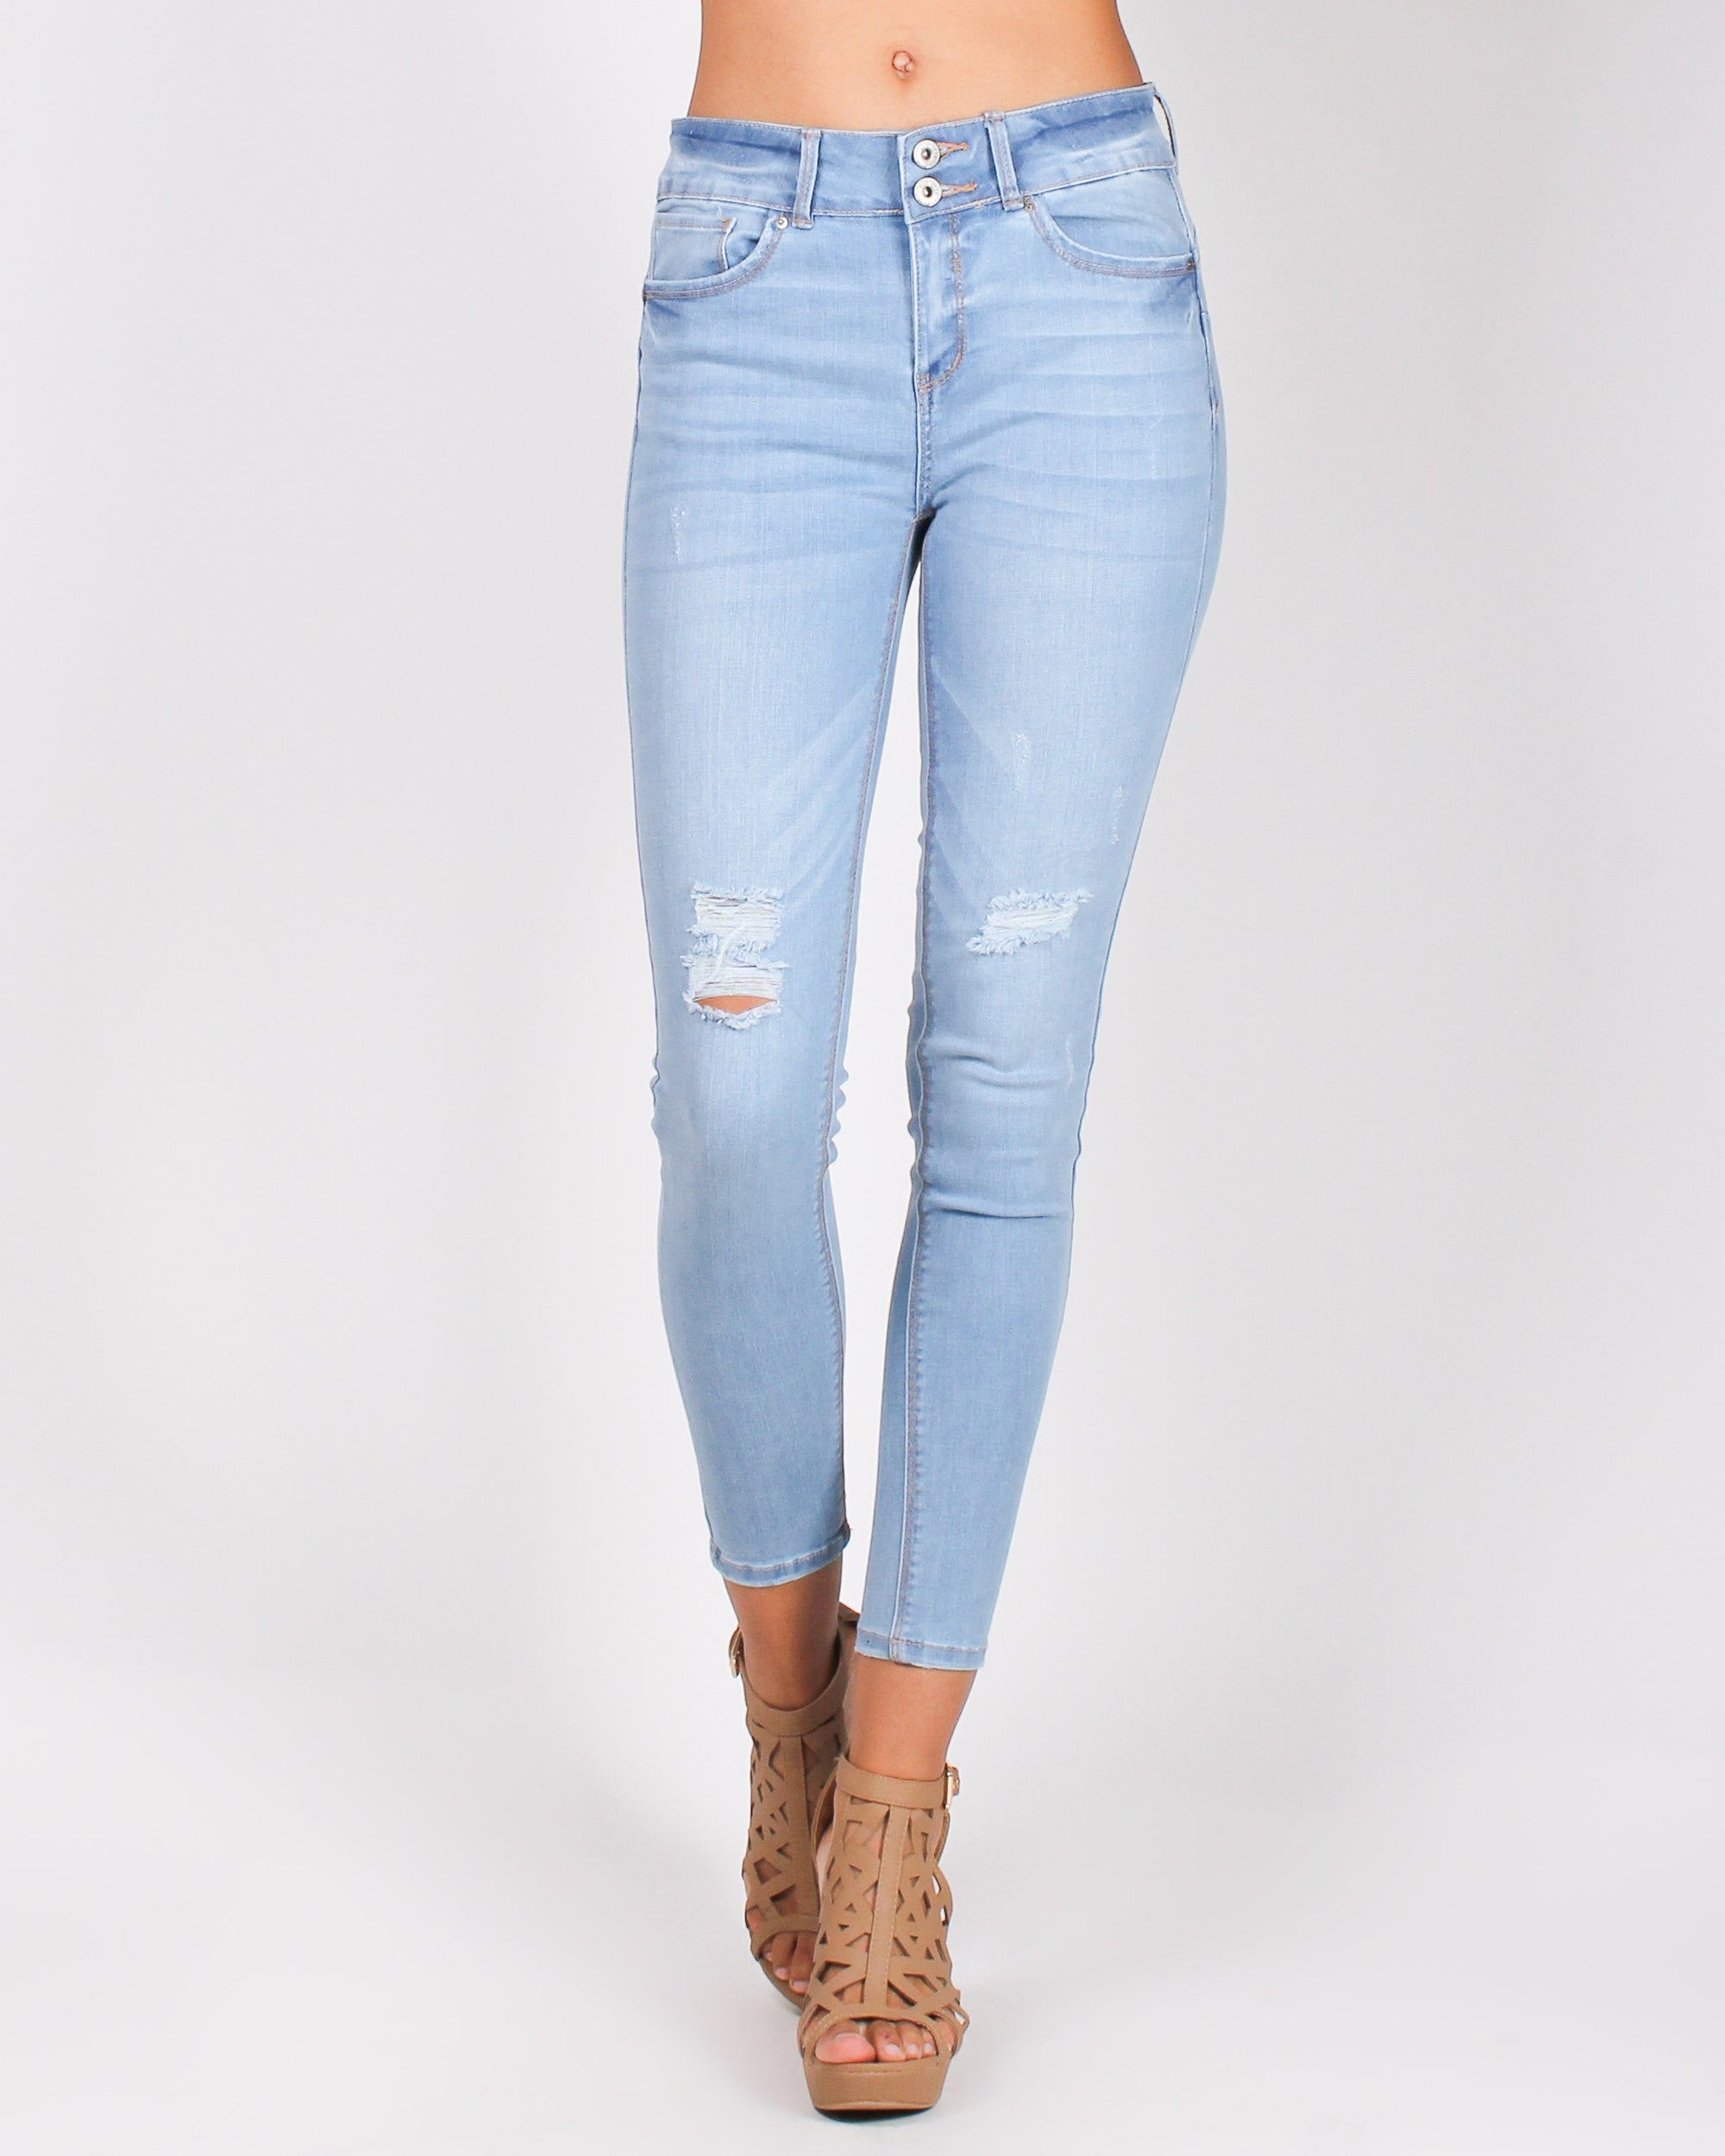 Fashion Q Shop Q Back That Ass-et Skinny Jeans (Light) 90135